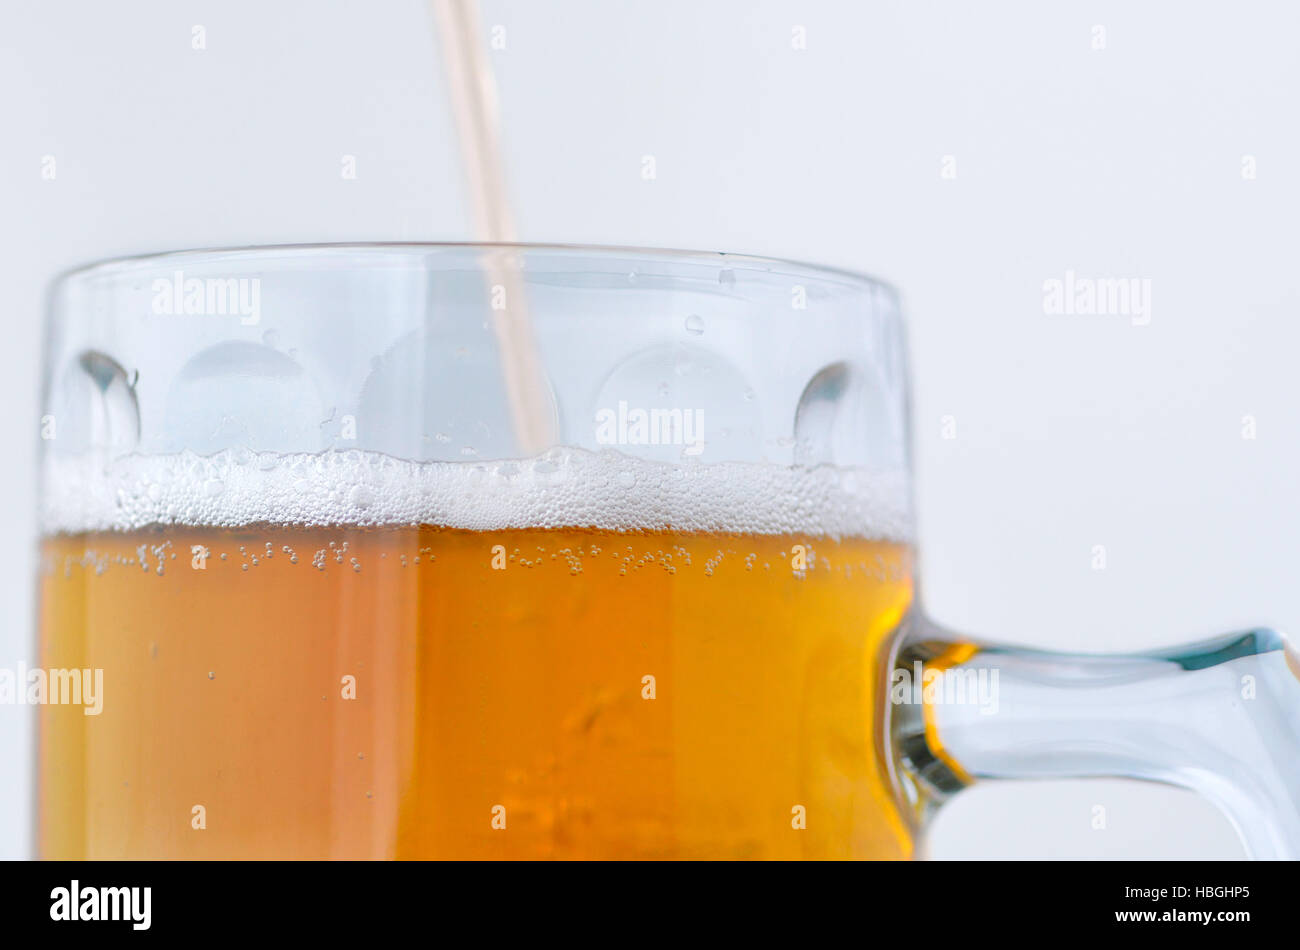 Personal point of view of a person pouring beer into a mug. Food and drinks background.Alcohol consumption concept. - Stock Image